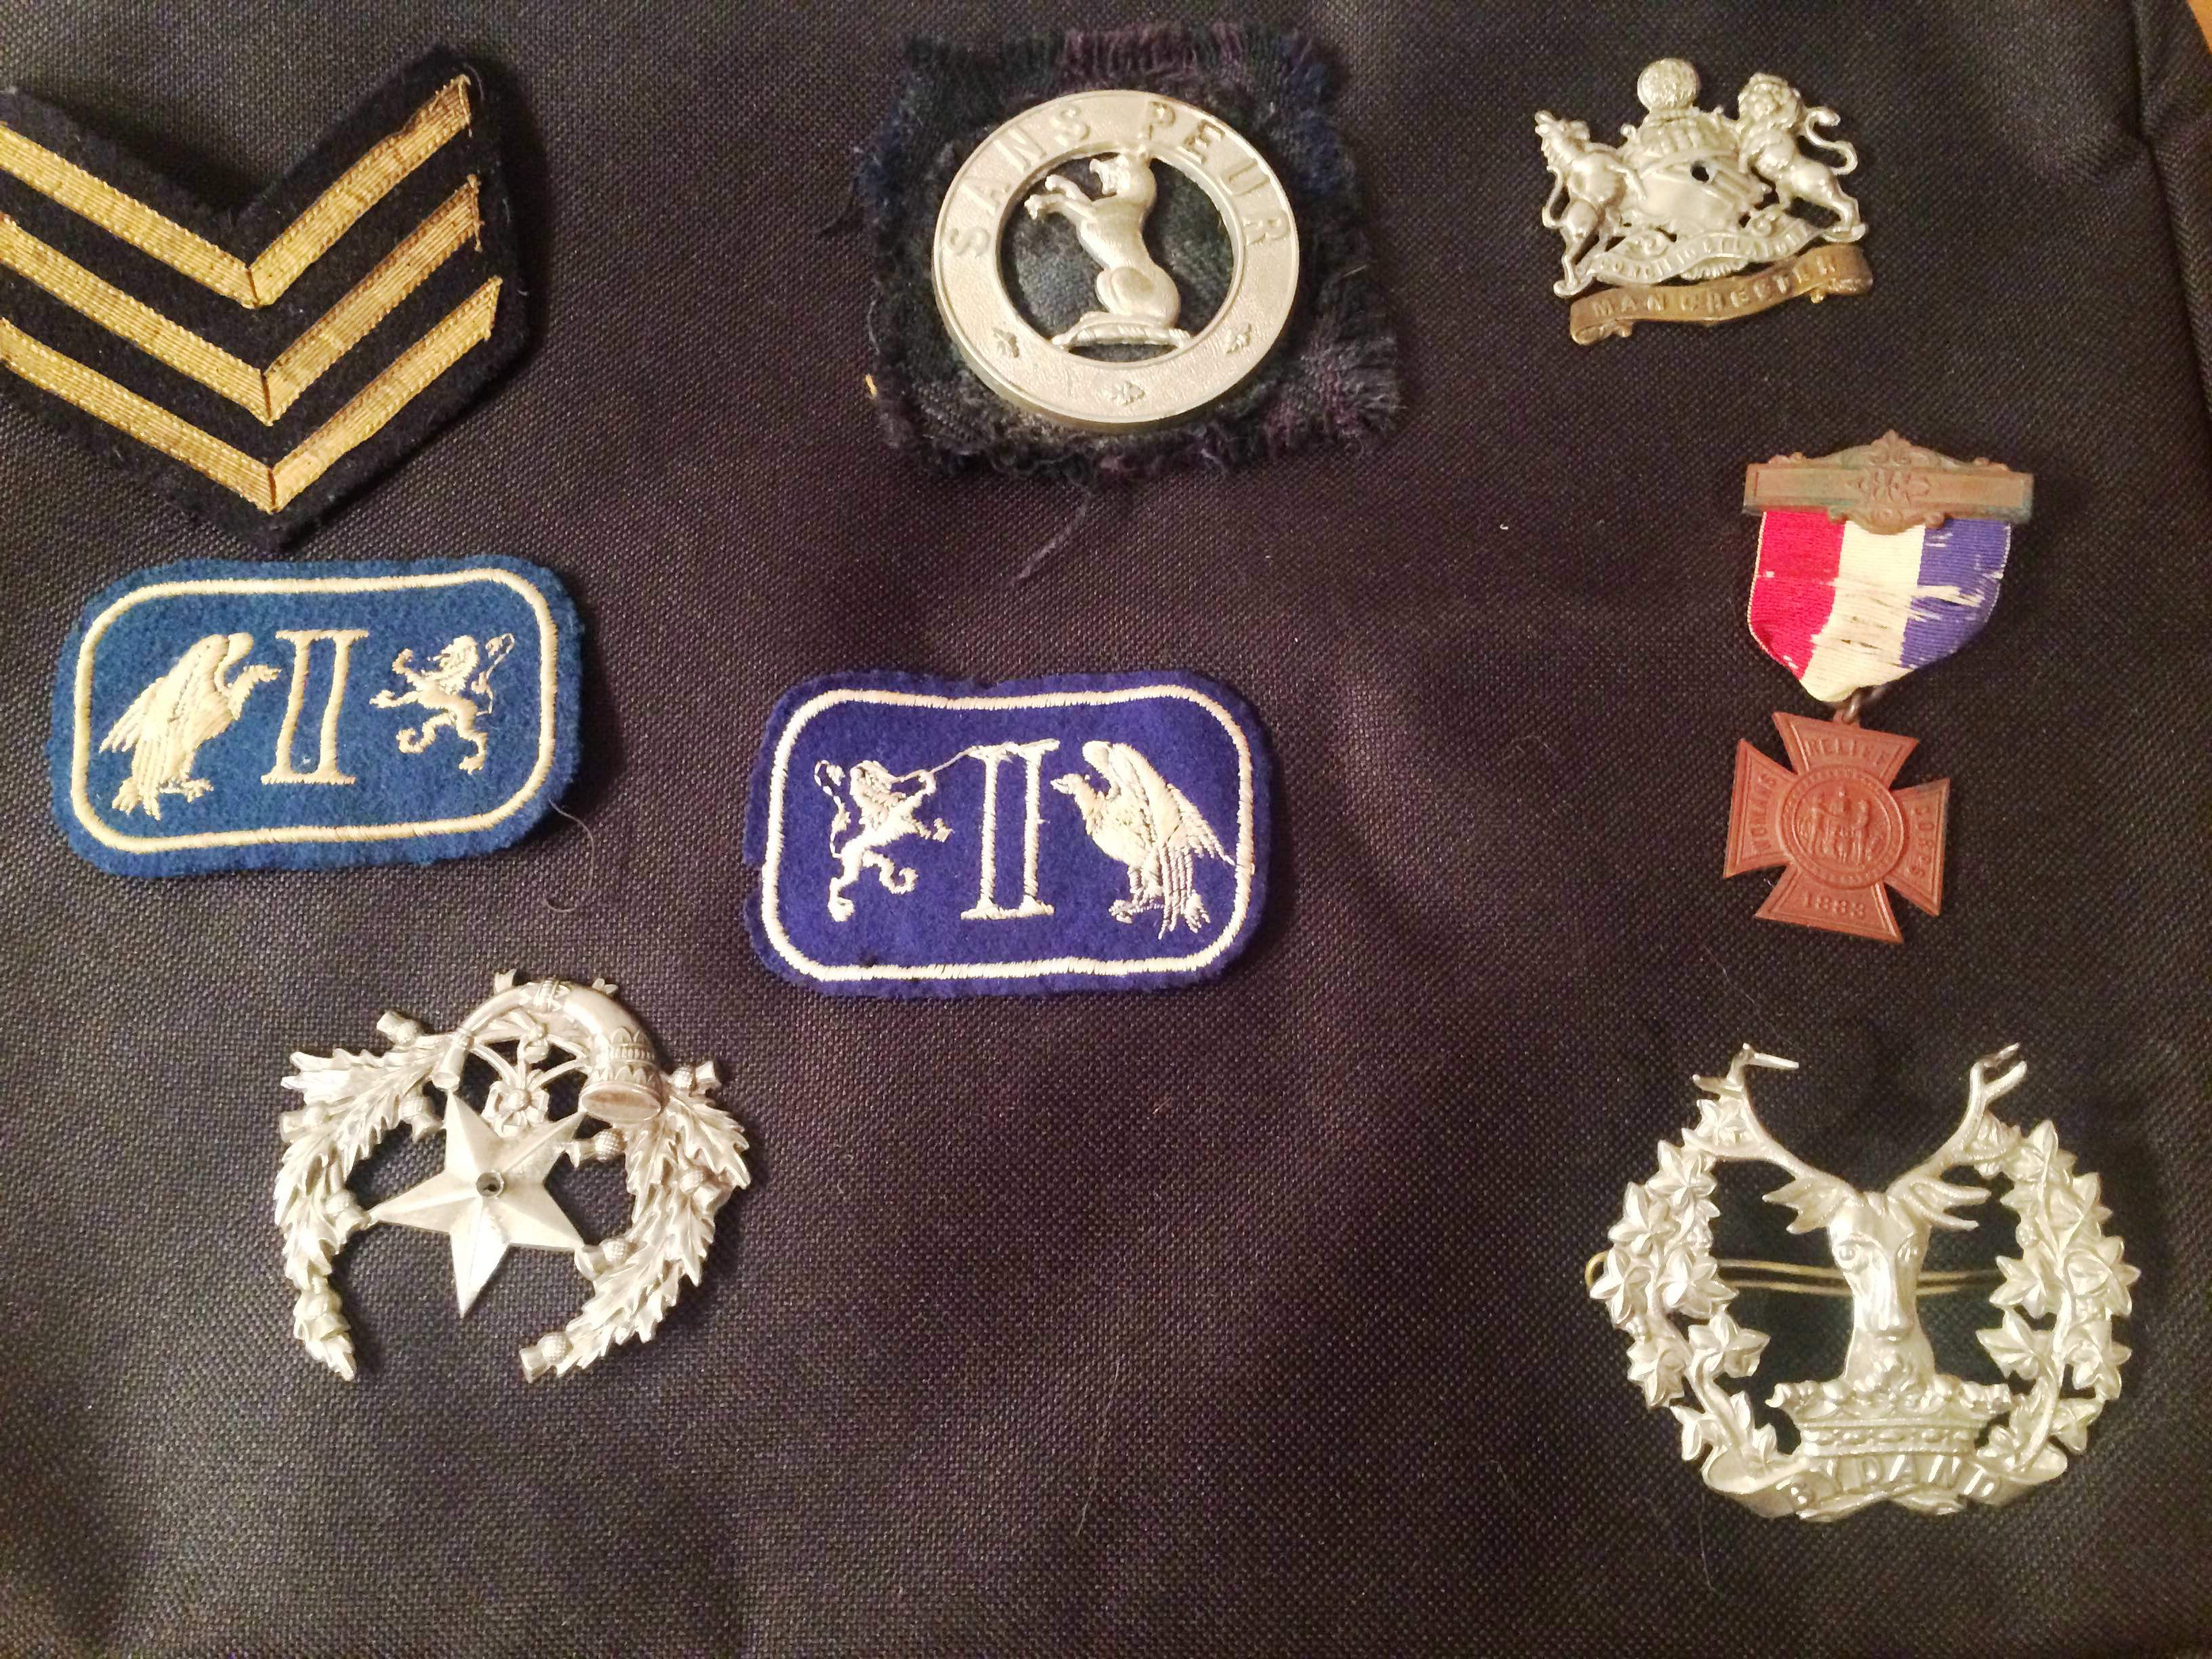 WWI items from soldiers at the hospital